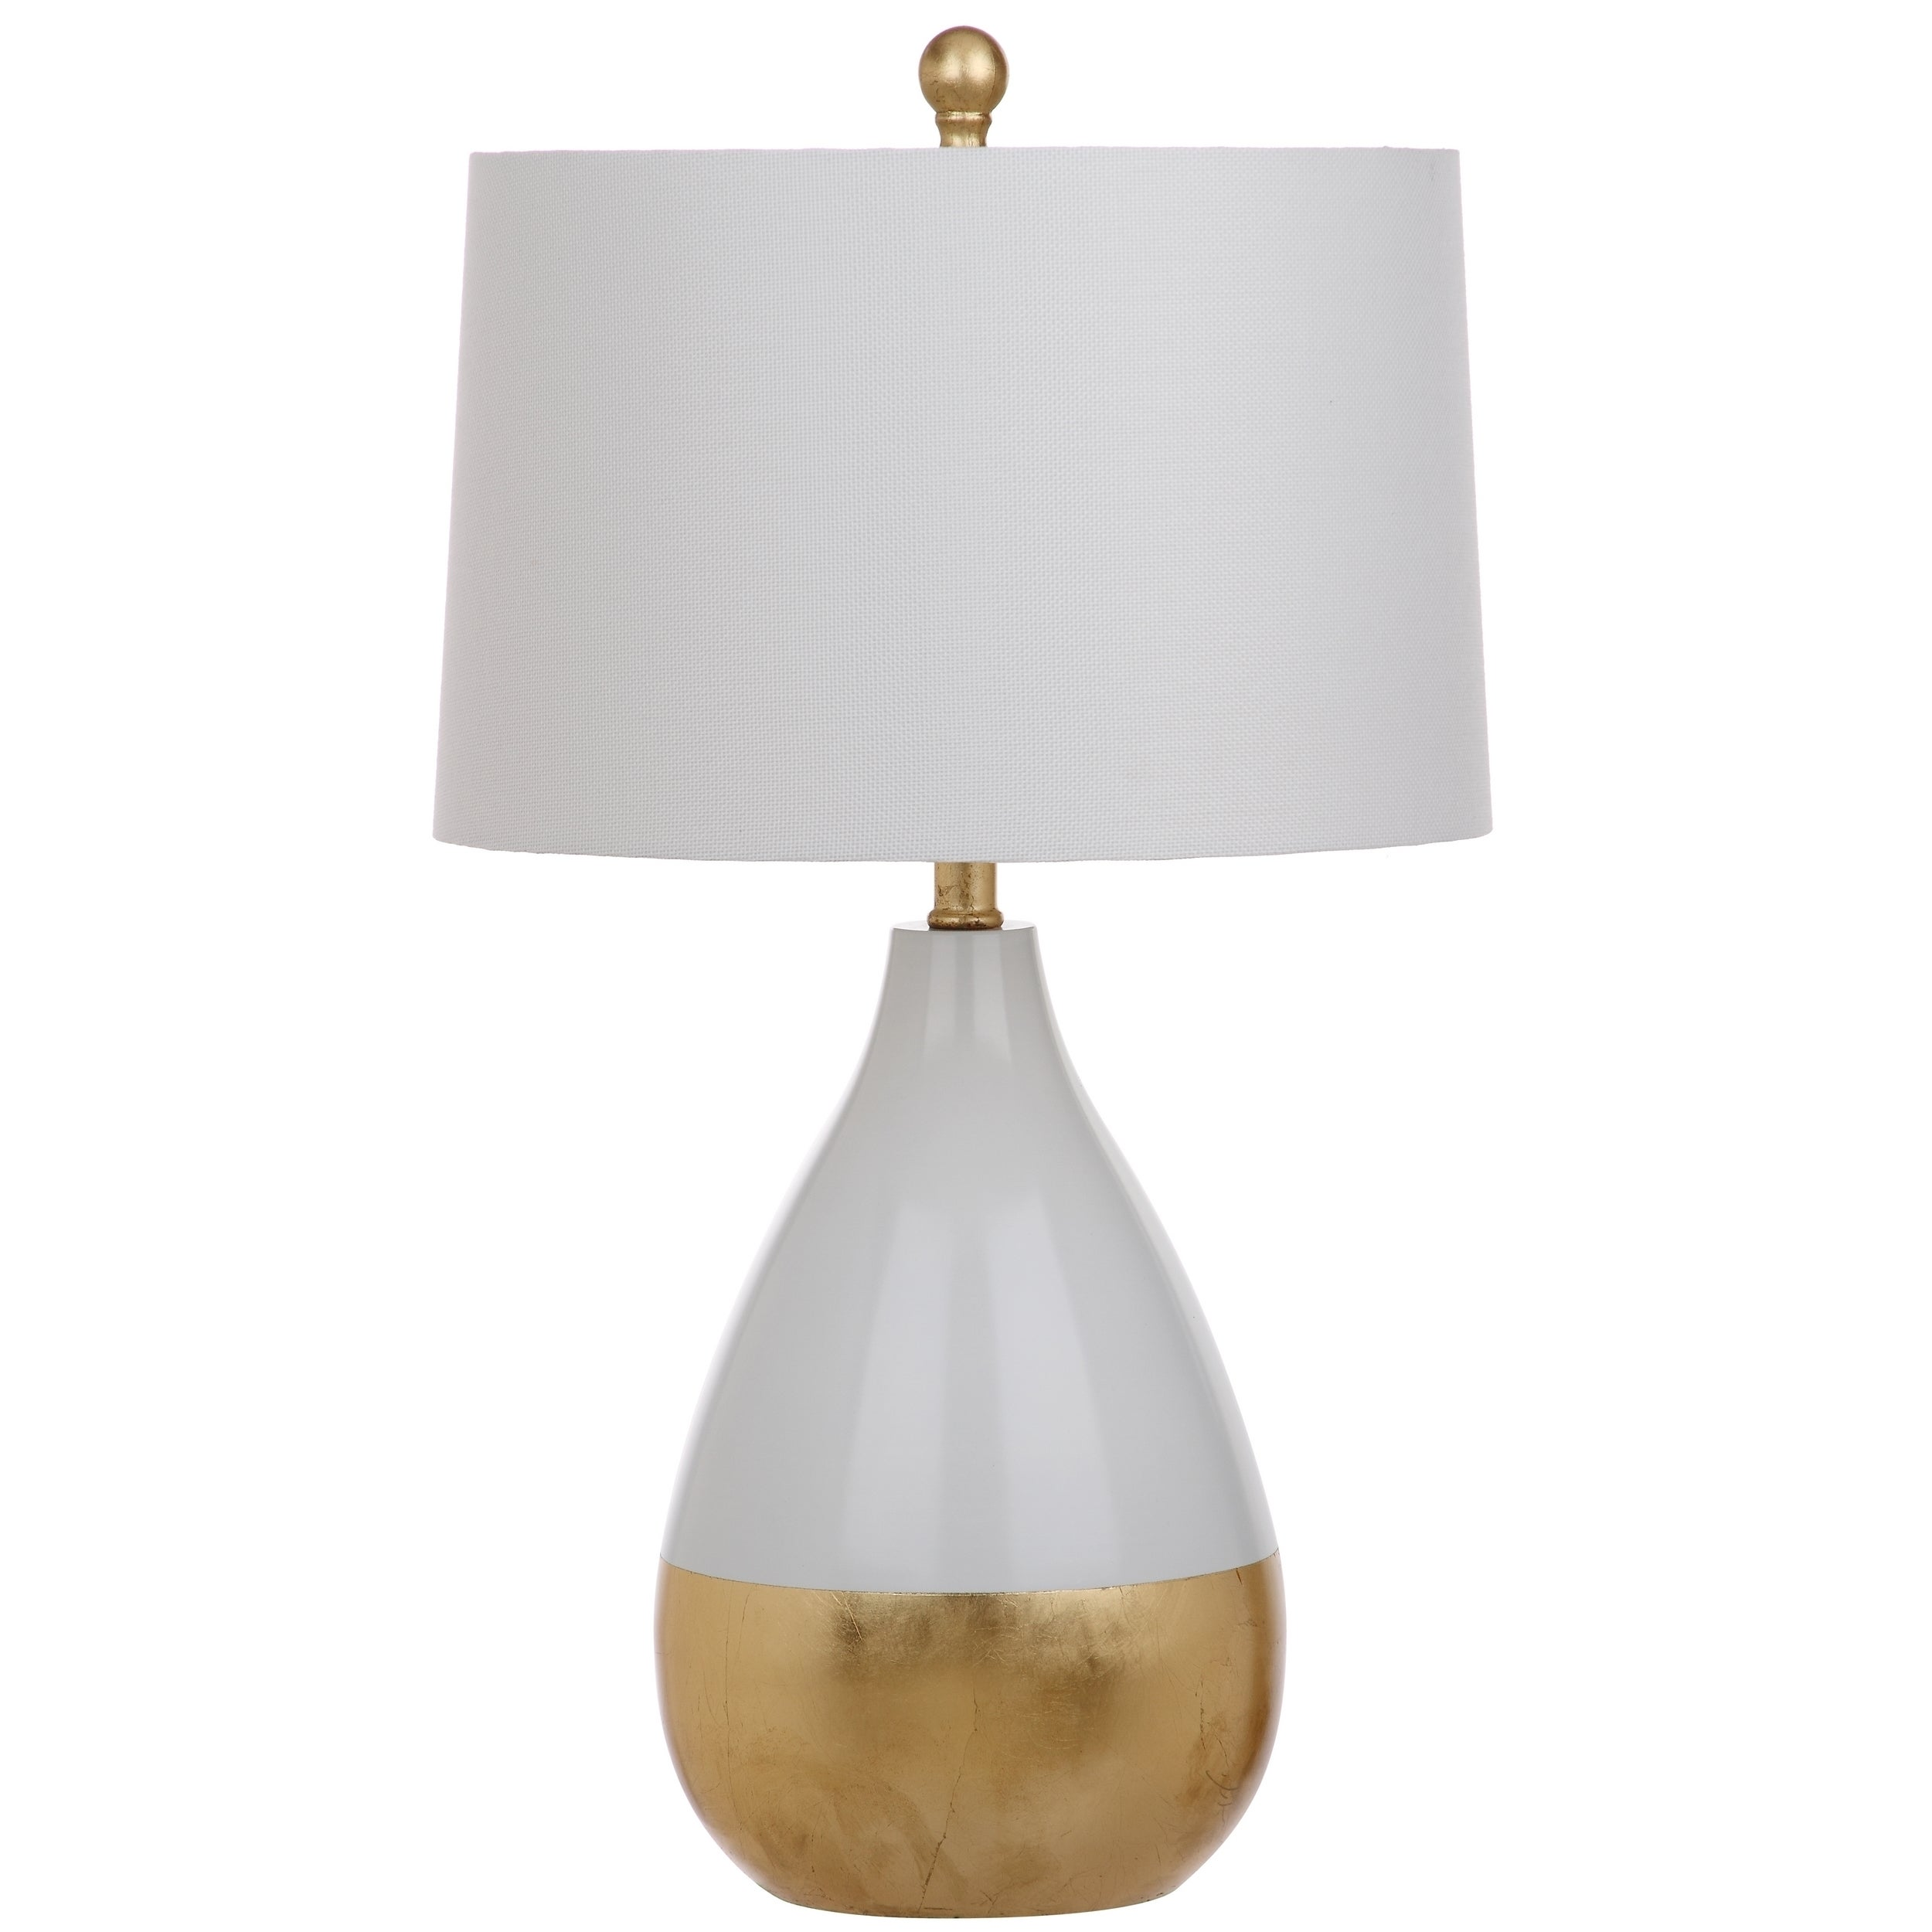 goodnight en pineapple axeswar gold design lamp light white and